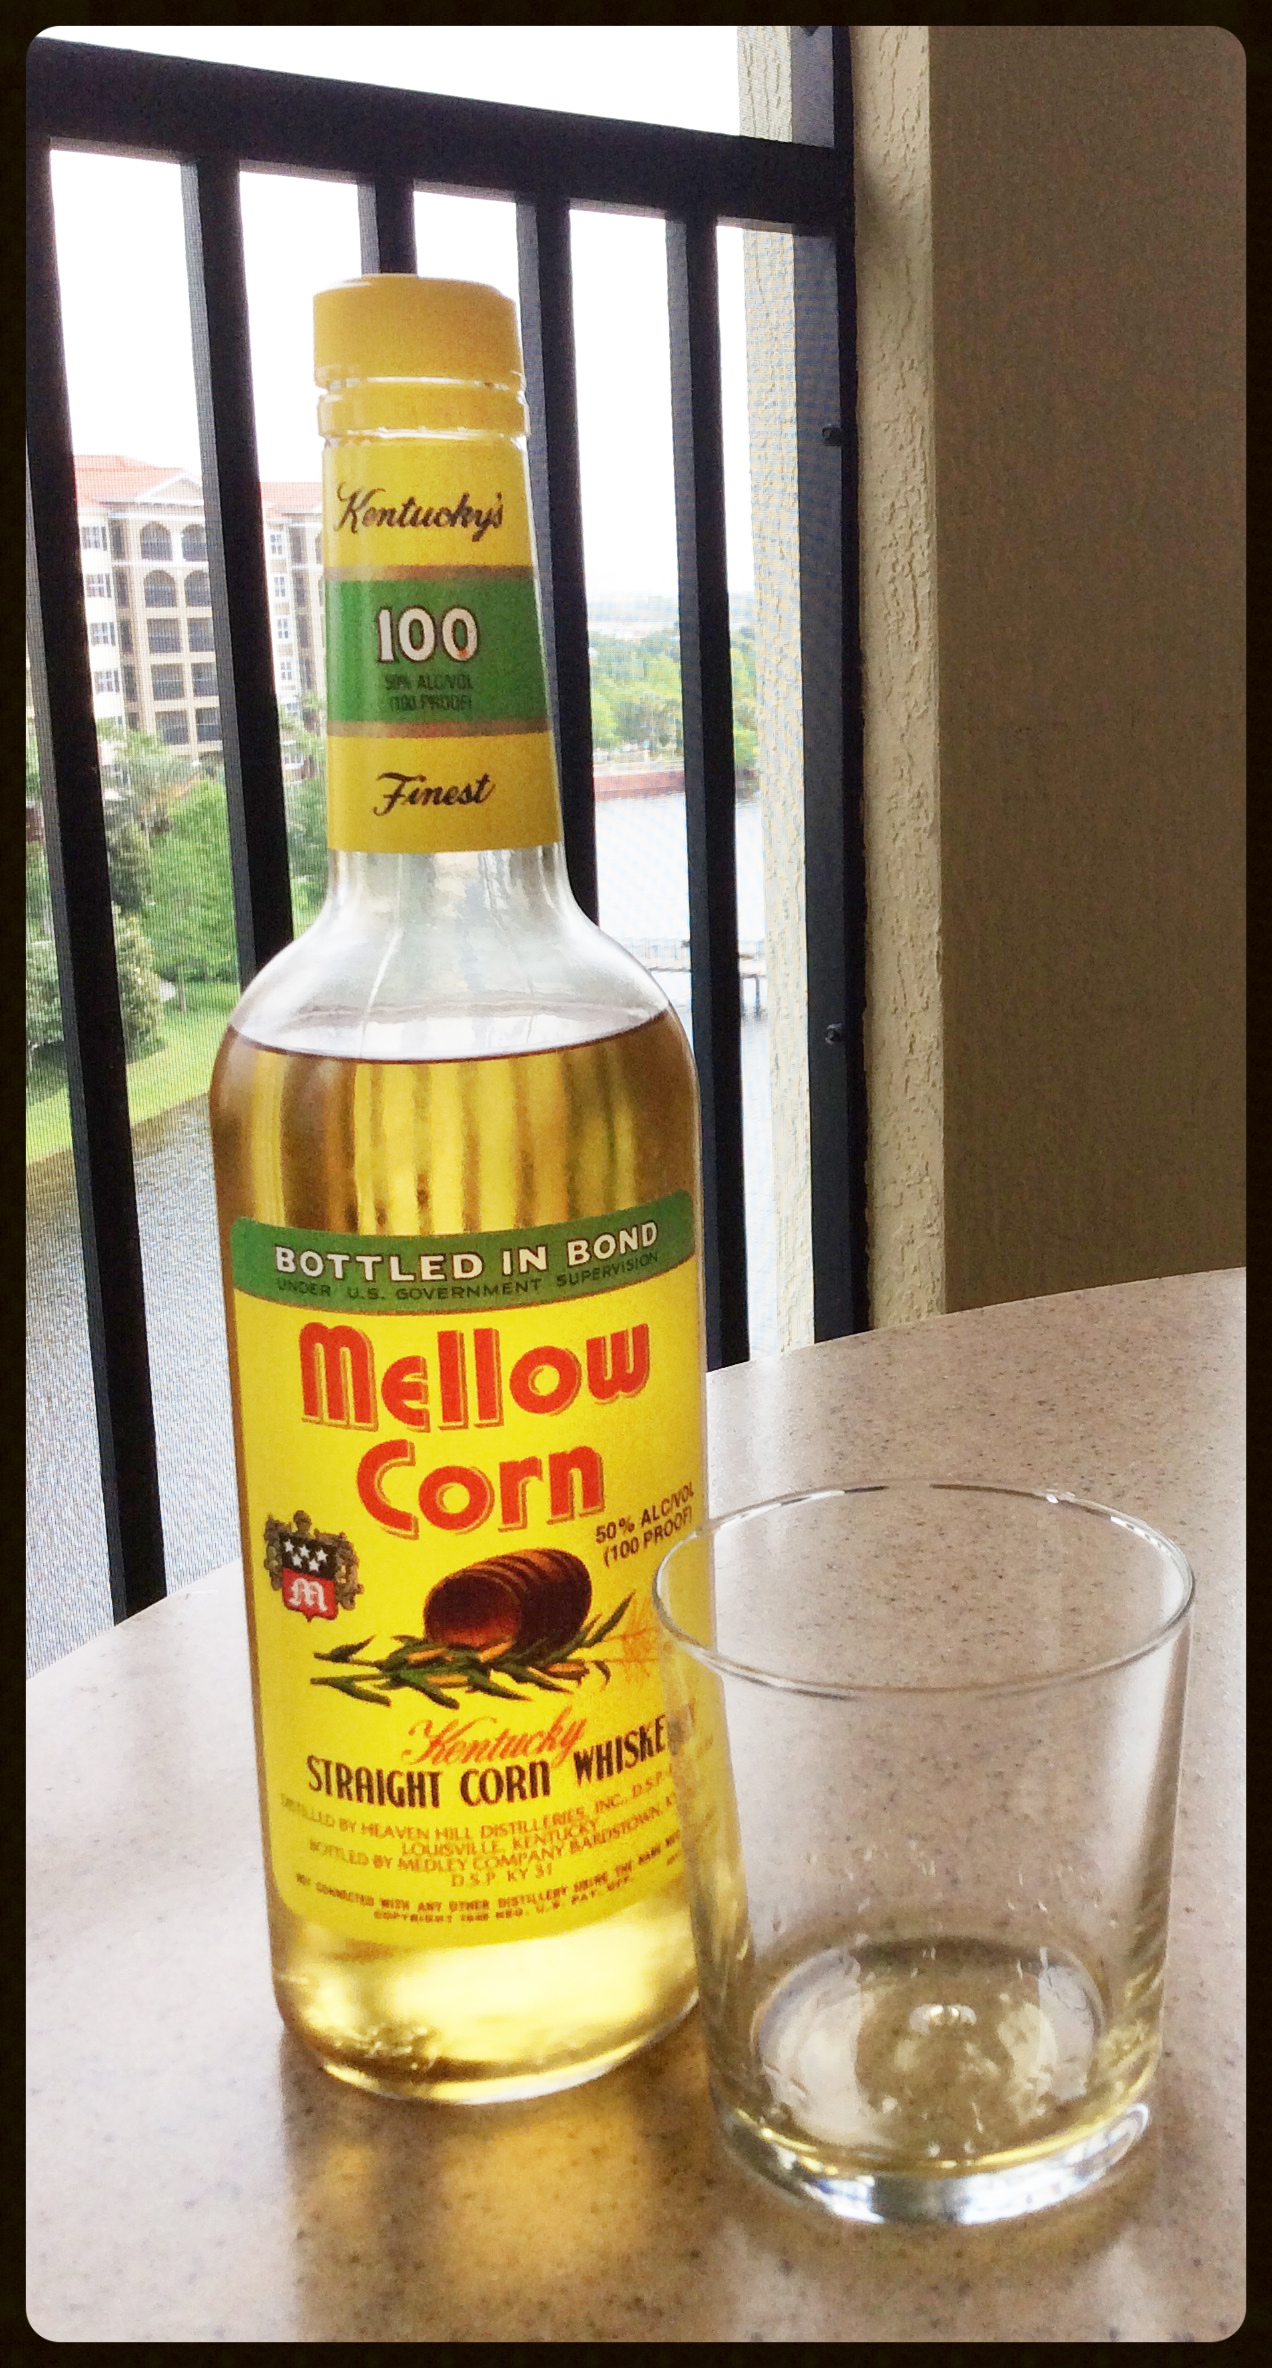 Mellow Corn Whisky